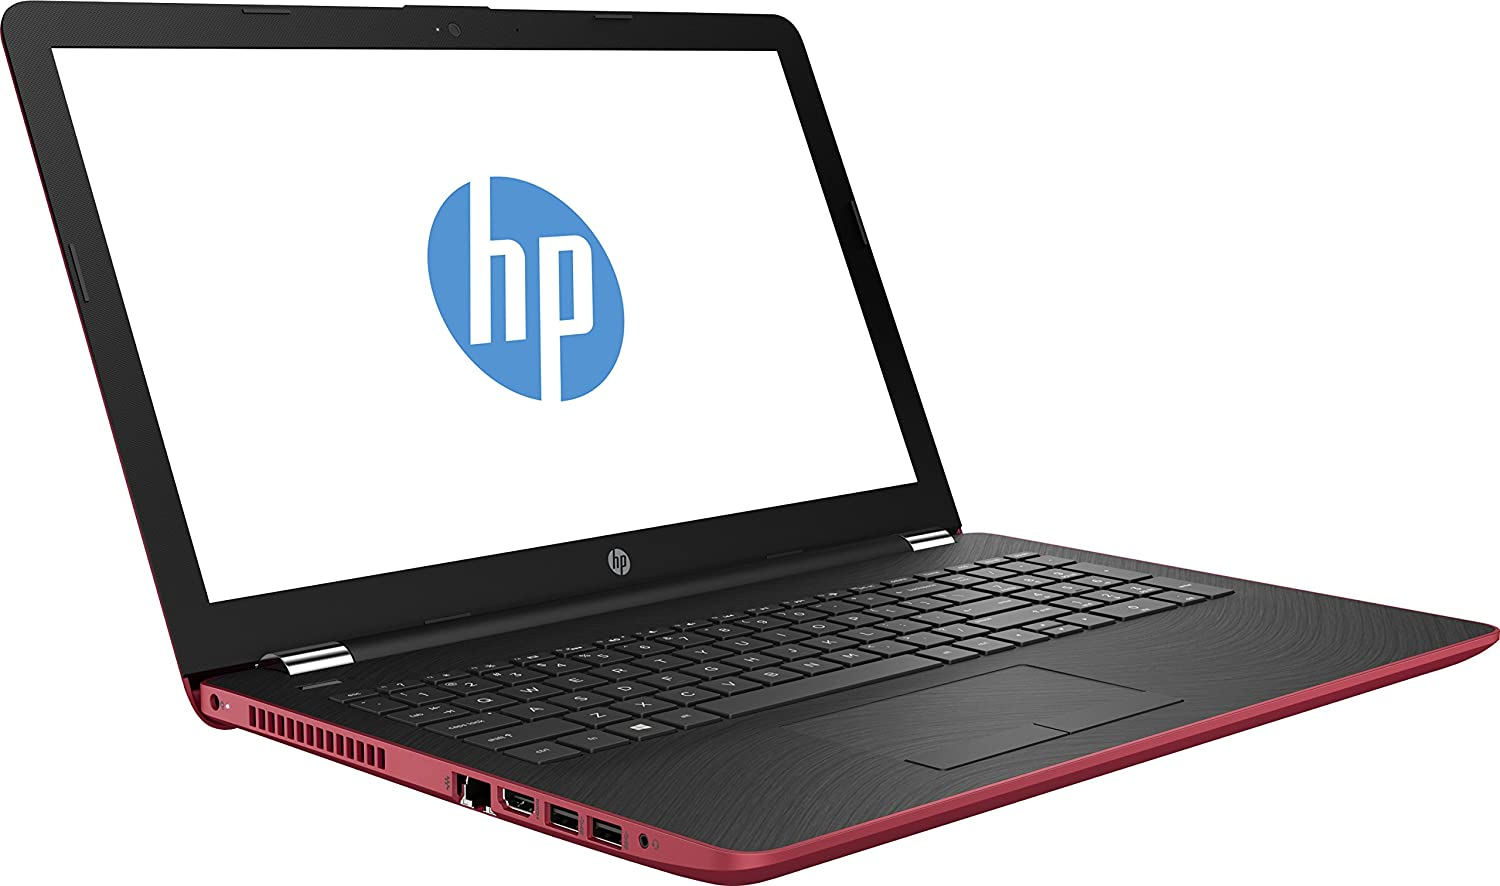 Hp 15-BS505NS (i5,8GB,256SSD,15